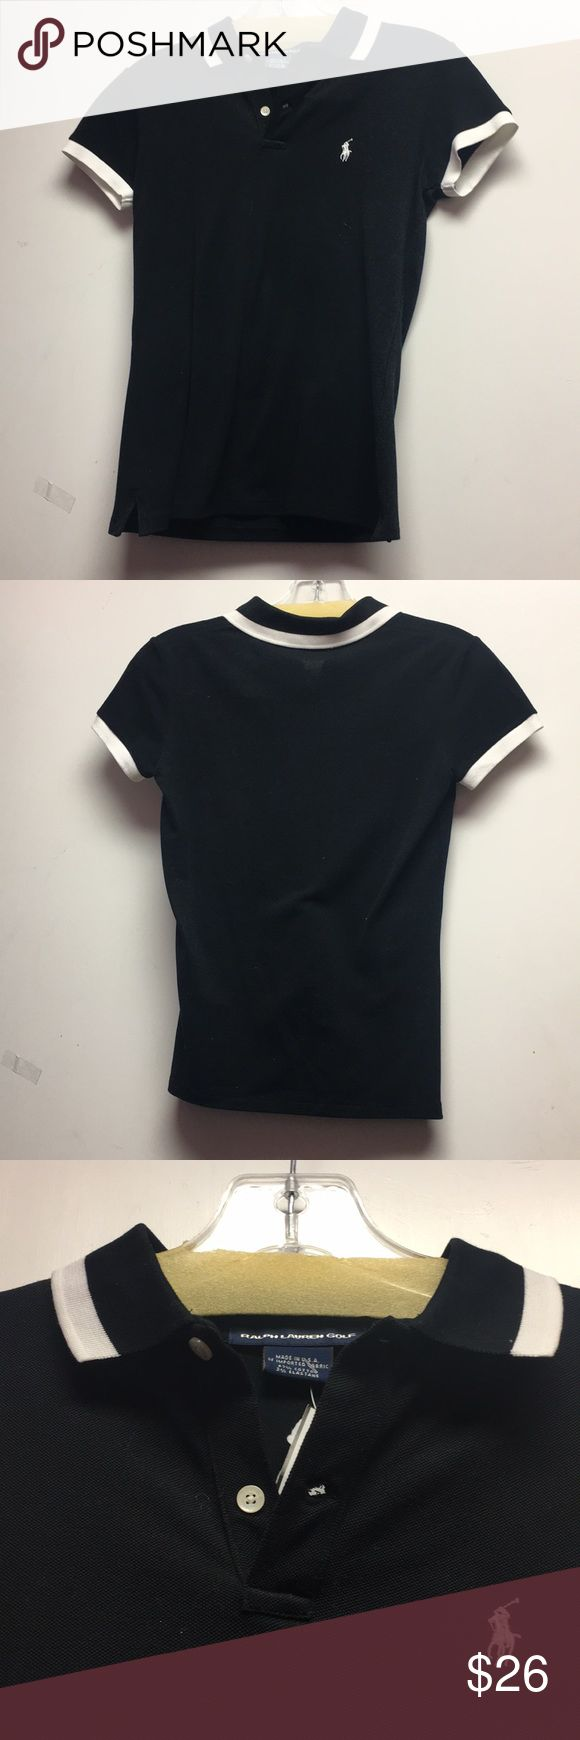 Ralph Lauren Black ladies polo shirt XS Ralph Lauren Black ladies polo shirt XS. Black tshirt with white stripe lining on collar and on tips of sleeves. White logo in right corner. Has two buttons that button all the way up. Soft cotton material. Back is solid black. Gently used and in good condition. Consigned to my boutique-no trades! Ralph Lauren Tops Tees - Short Sleeve